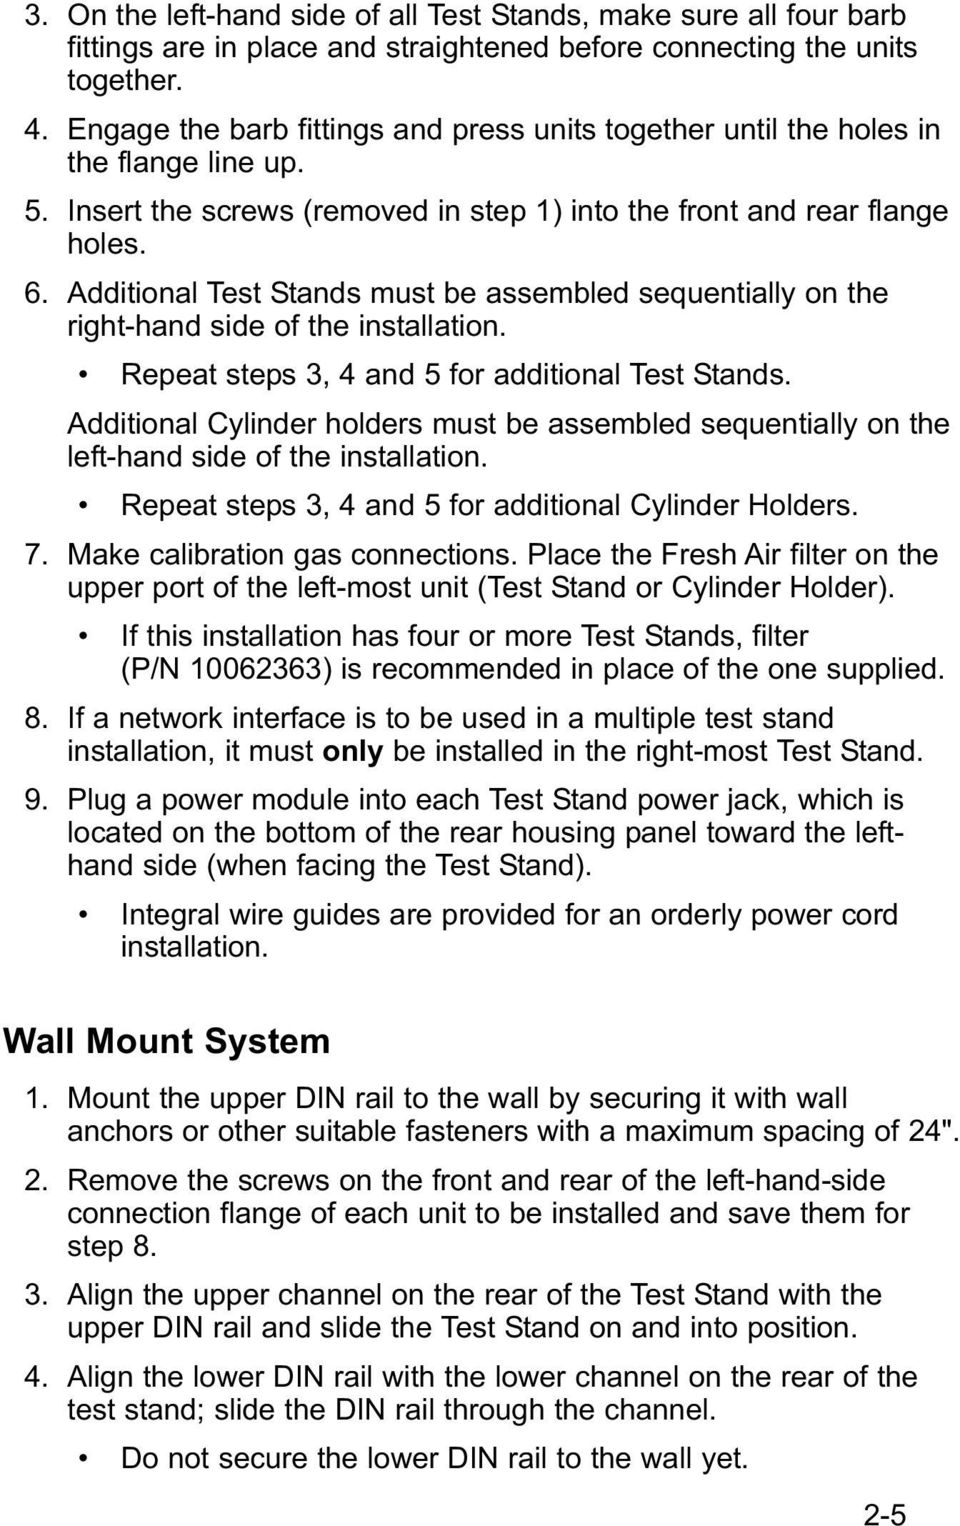 Additional Test Stands must be assembled sequentially on the right-hand side of the installation. Repeat steps 3, 4 and 5 for additional Test Stands.